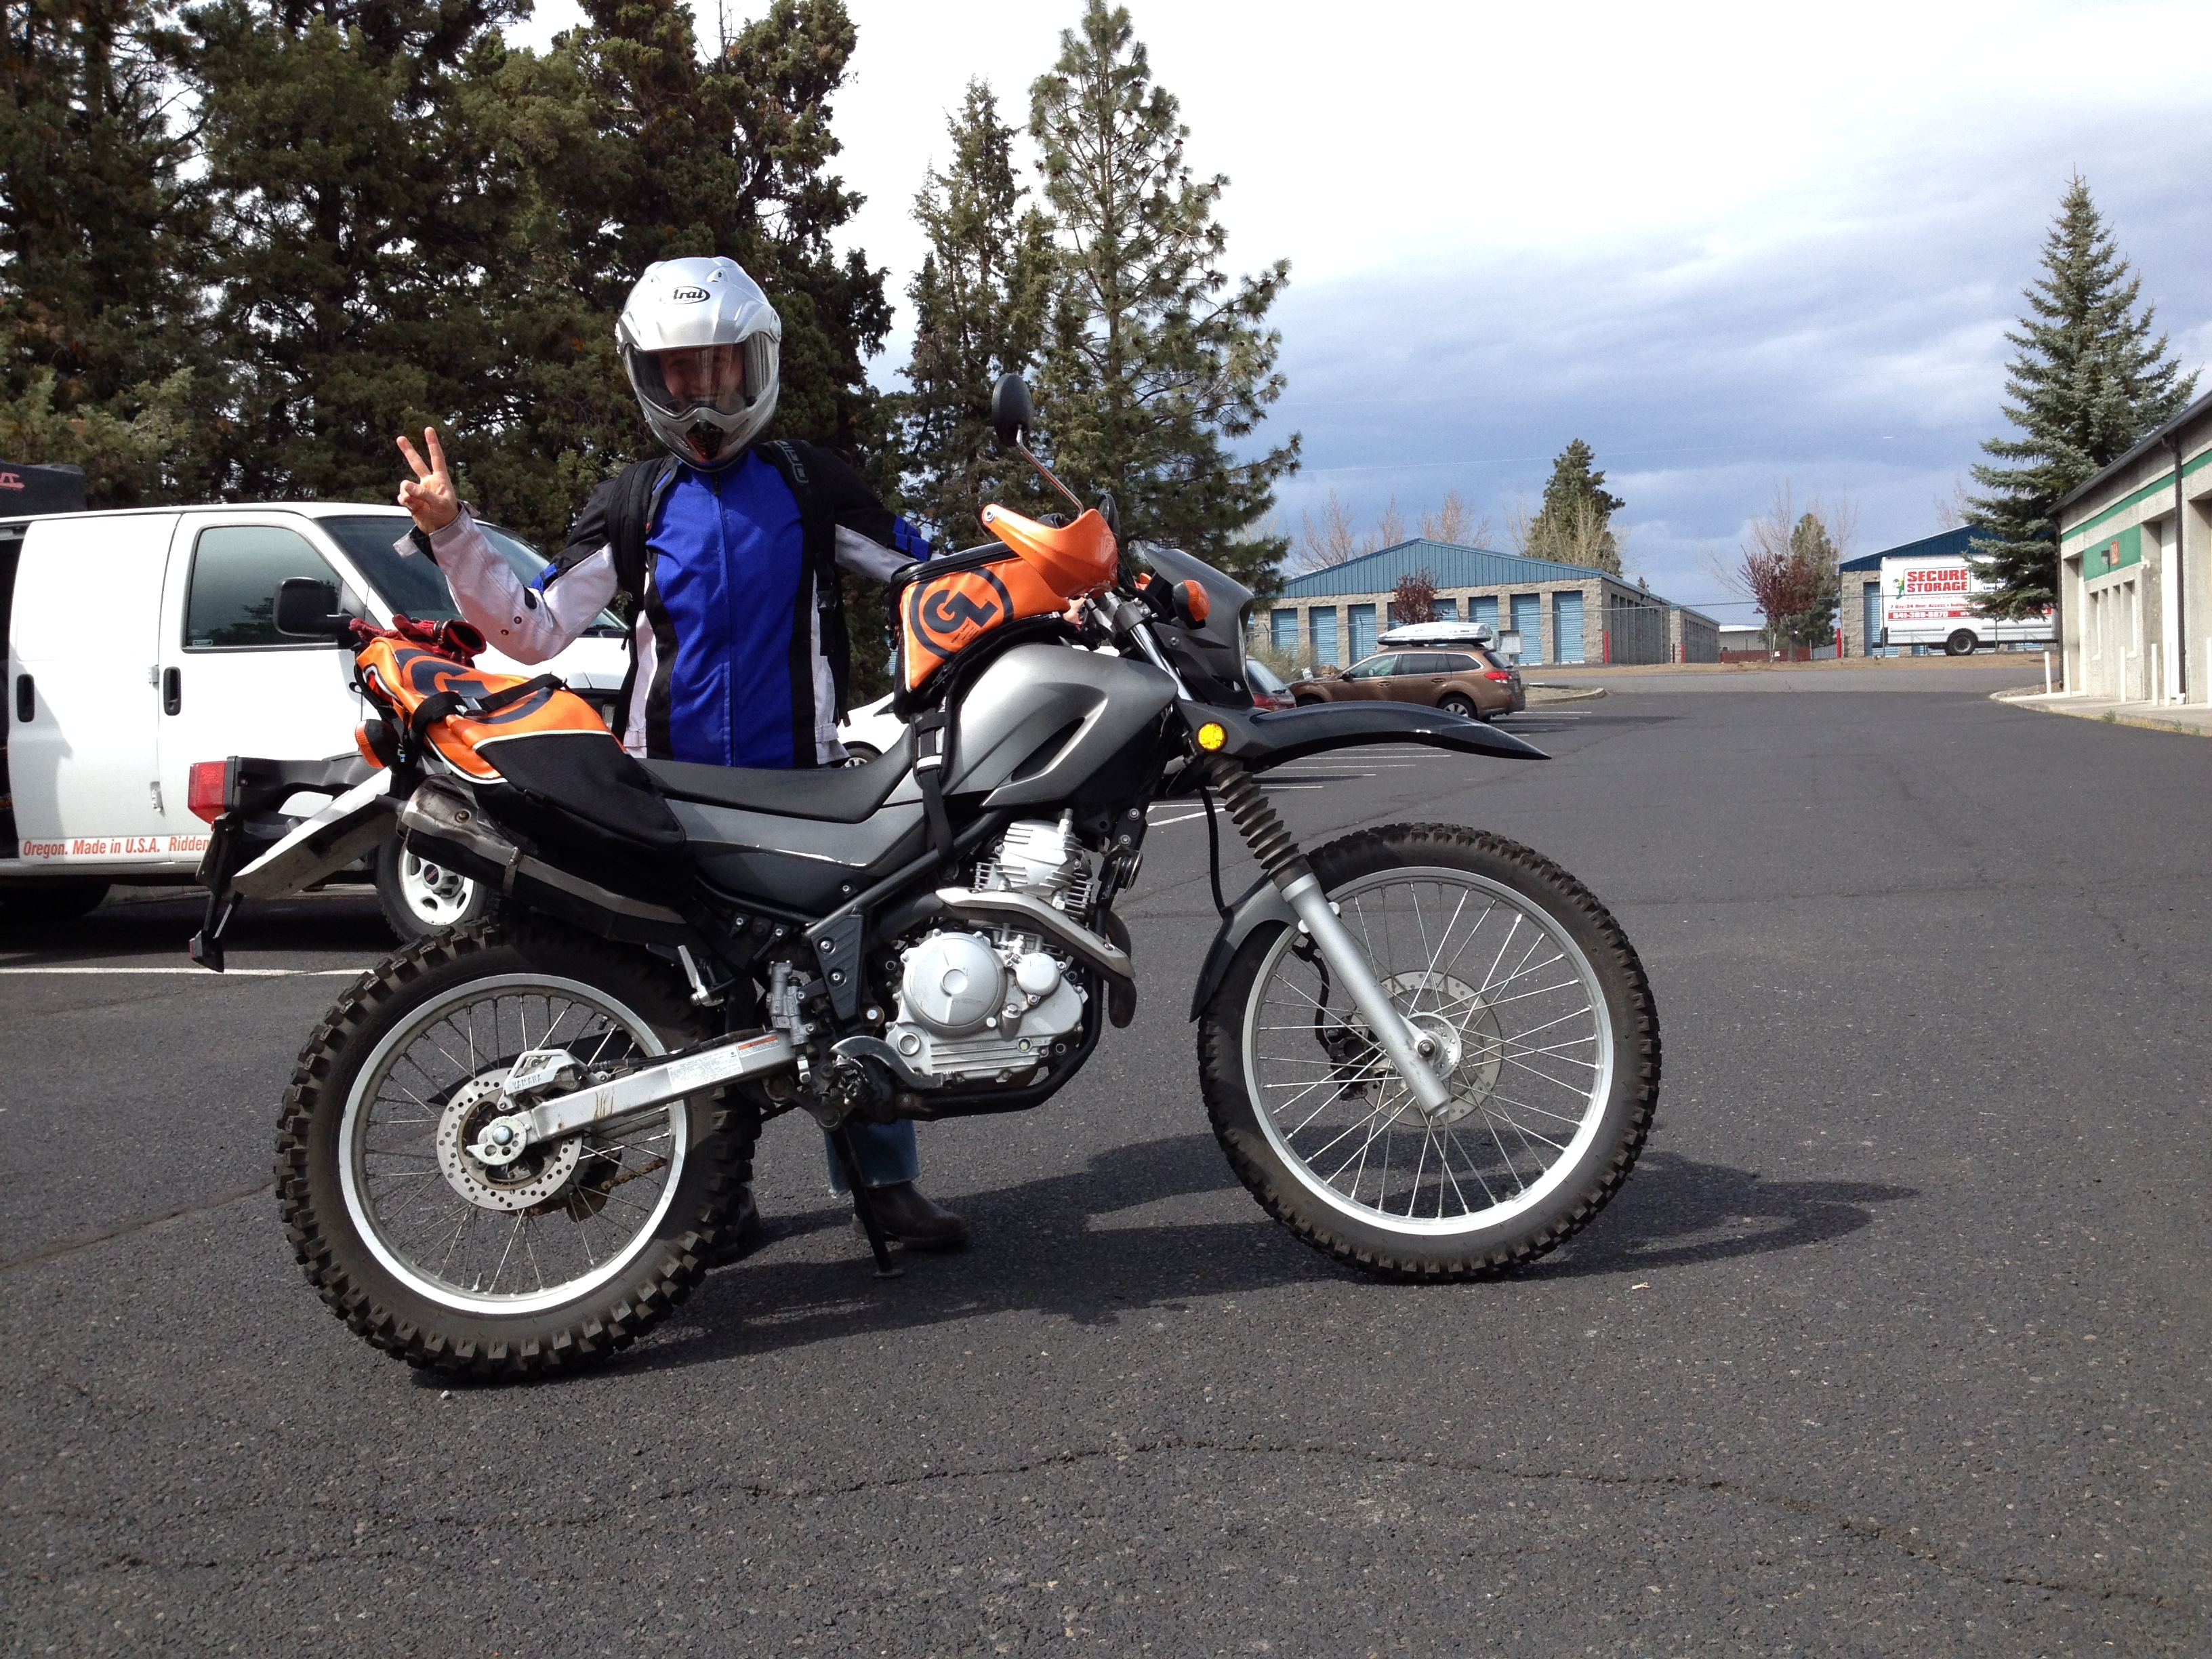 Giant Loop Rider: Solana Visits GL With Her Yamaha XT250, To